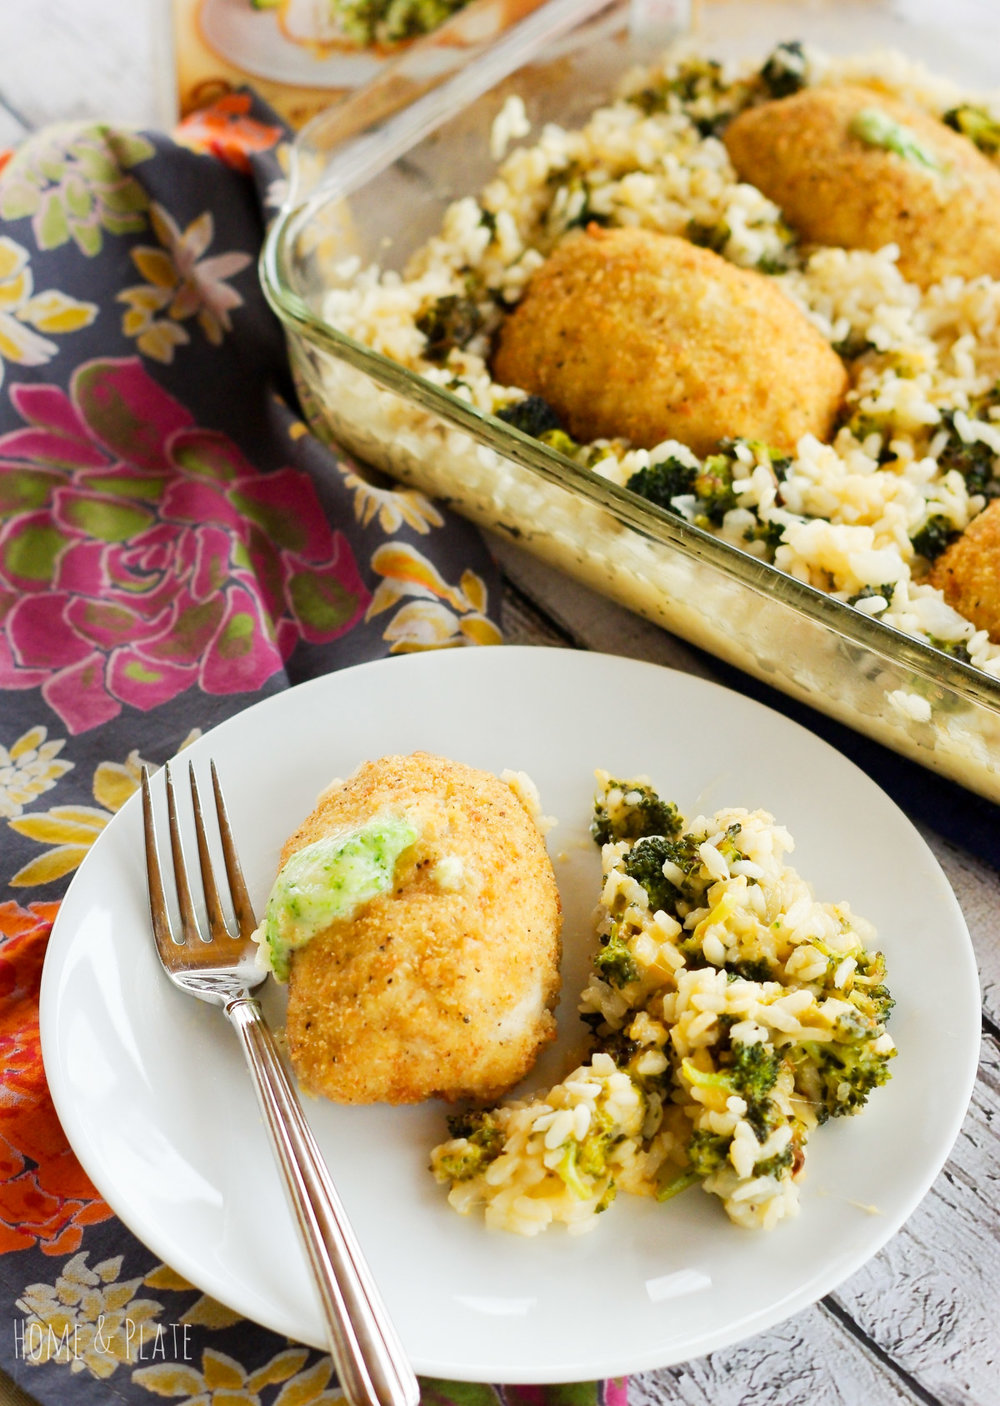 Oven Baked Broccoli & Cheddar Risotto with Barber Foods Stuffed Chicken | www.homeandplate.com | In under 40 minutes, you can serve up this oven baked risotto and serve it alongside a breaded stuffed chicken breast. #BarberNight #ad @BarberFoods